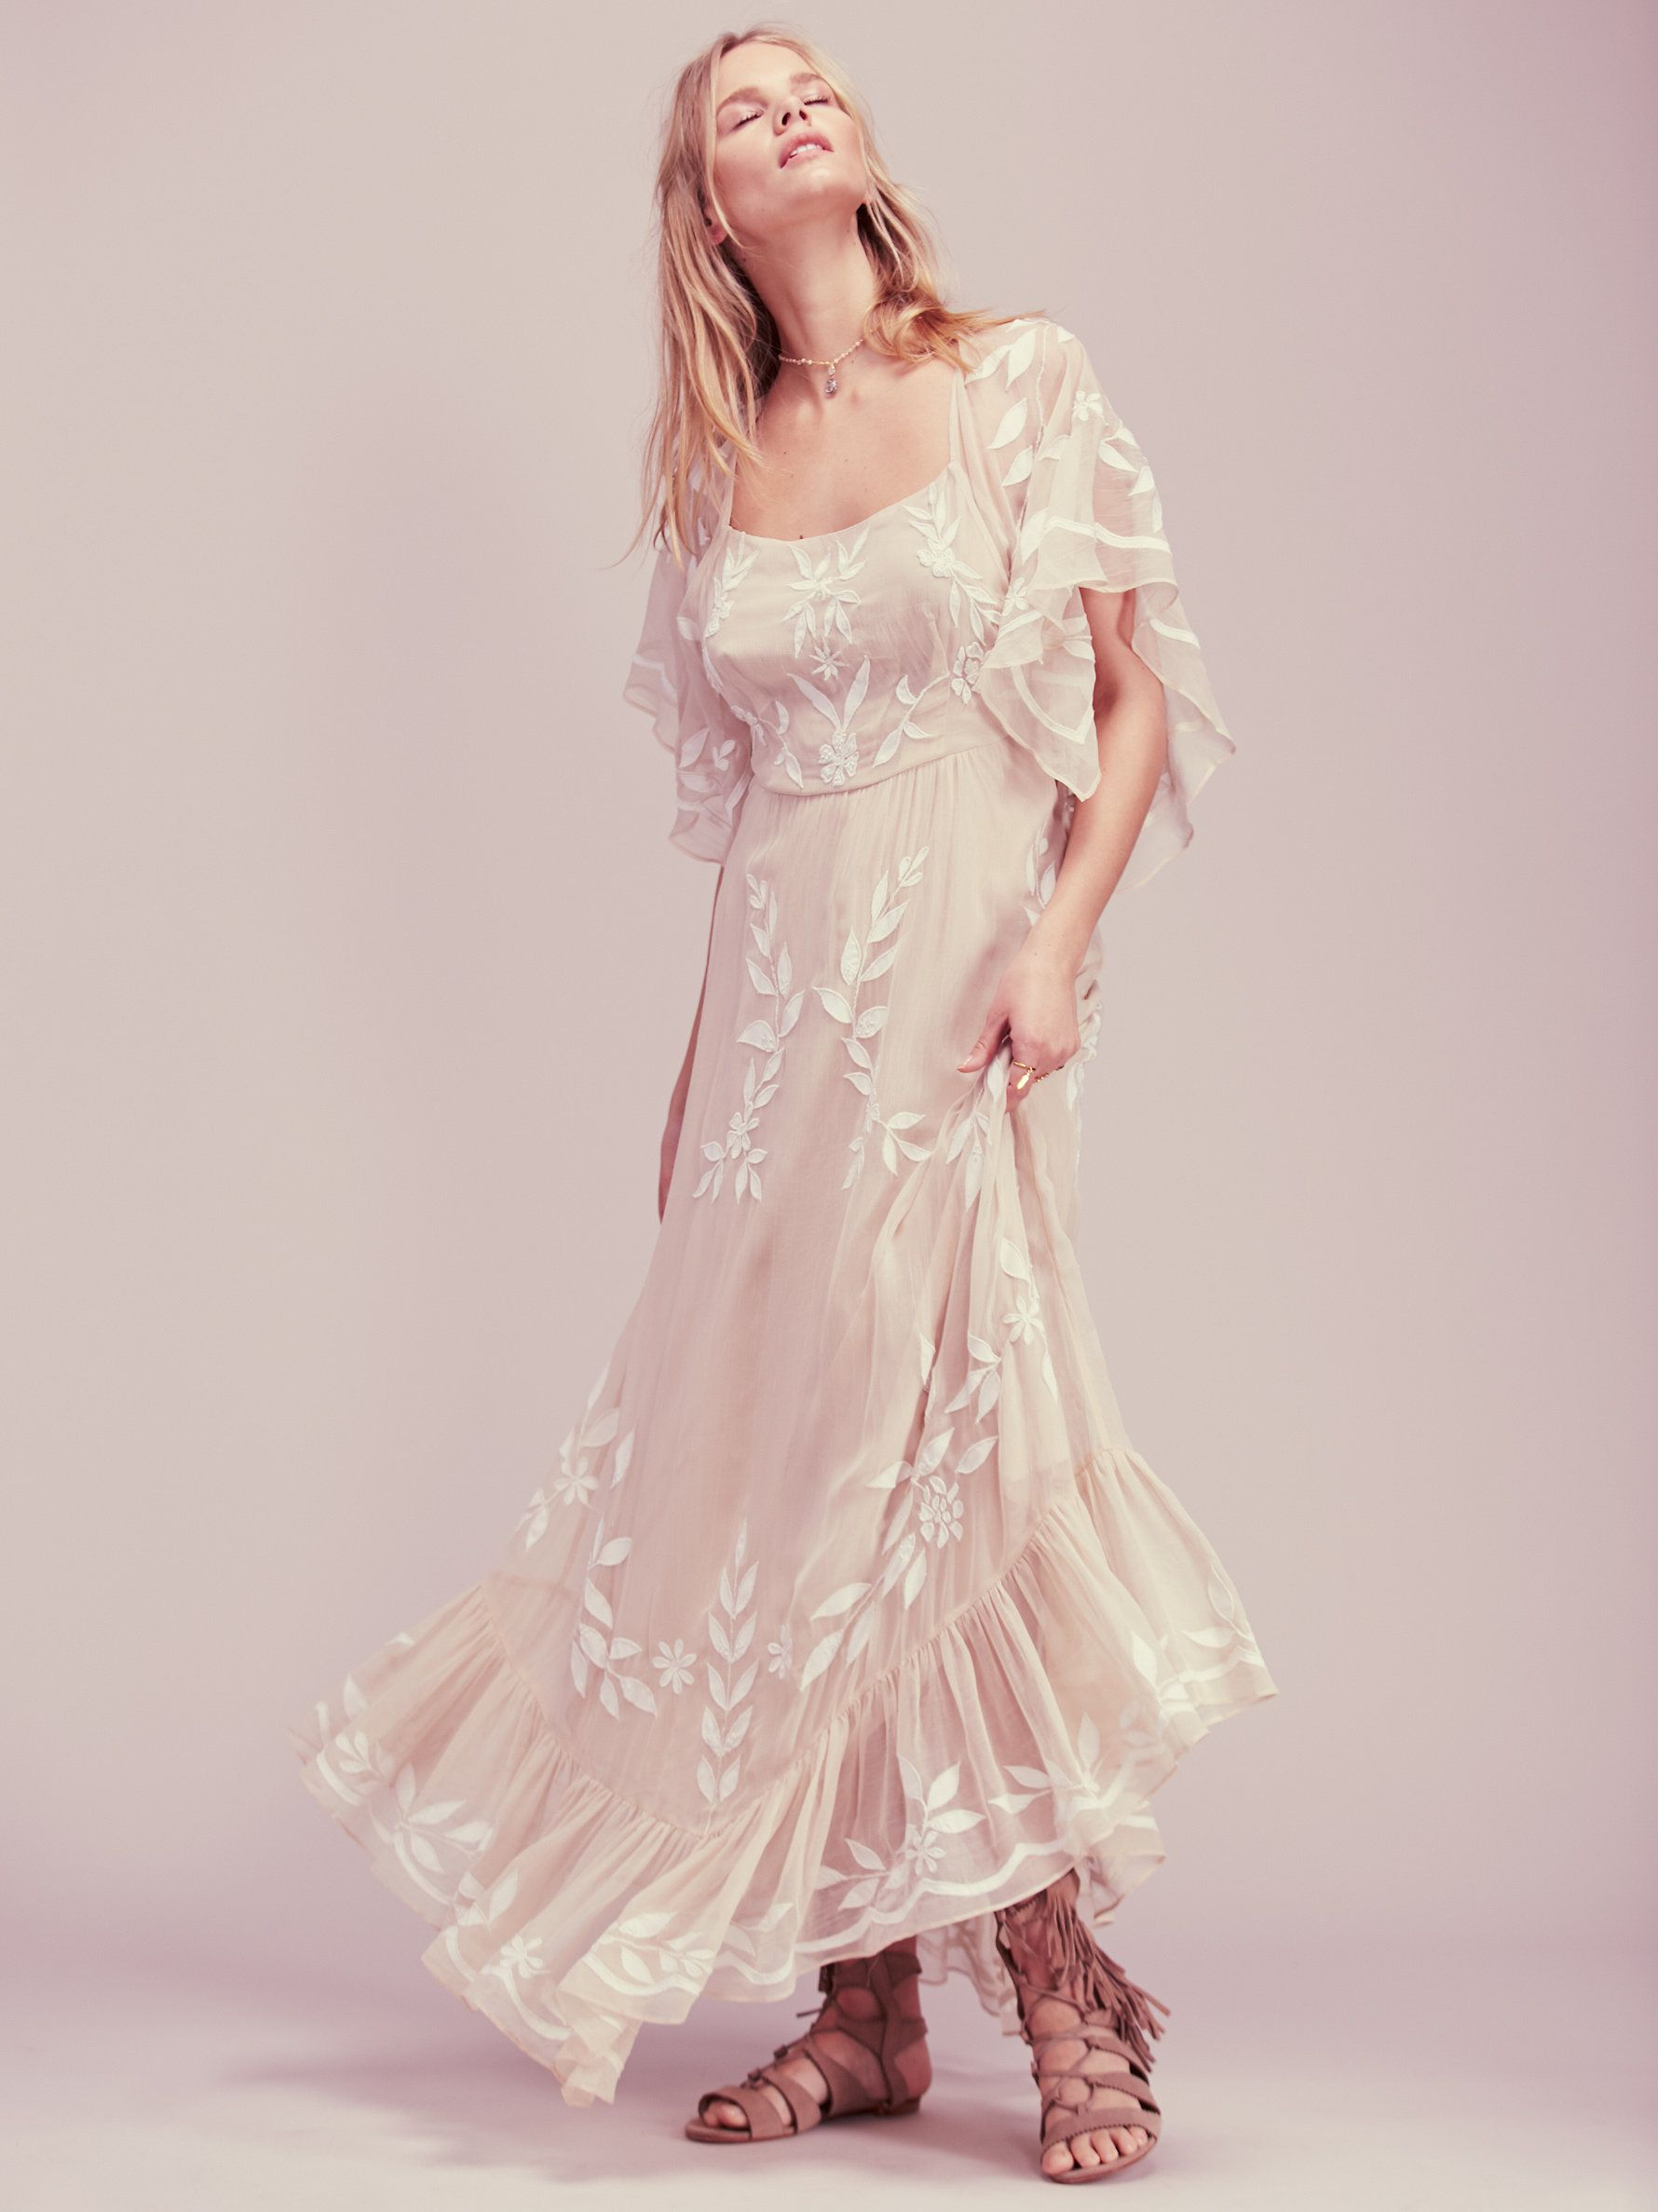 Enchanted forest maxi dress this ethereal maxi dress was made for